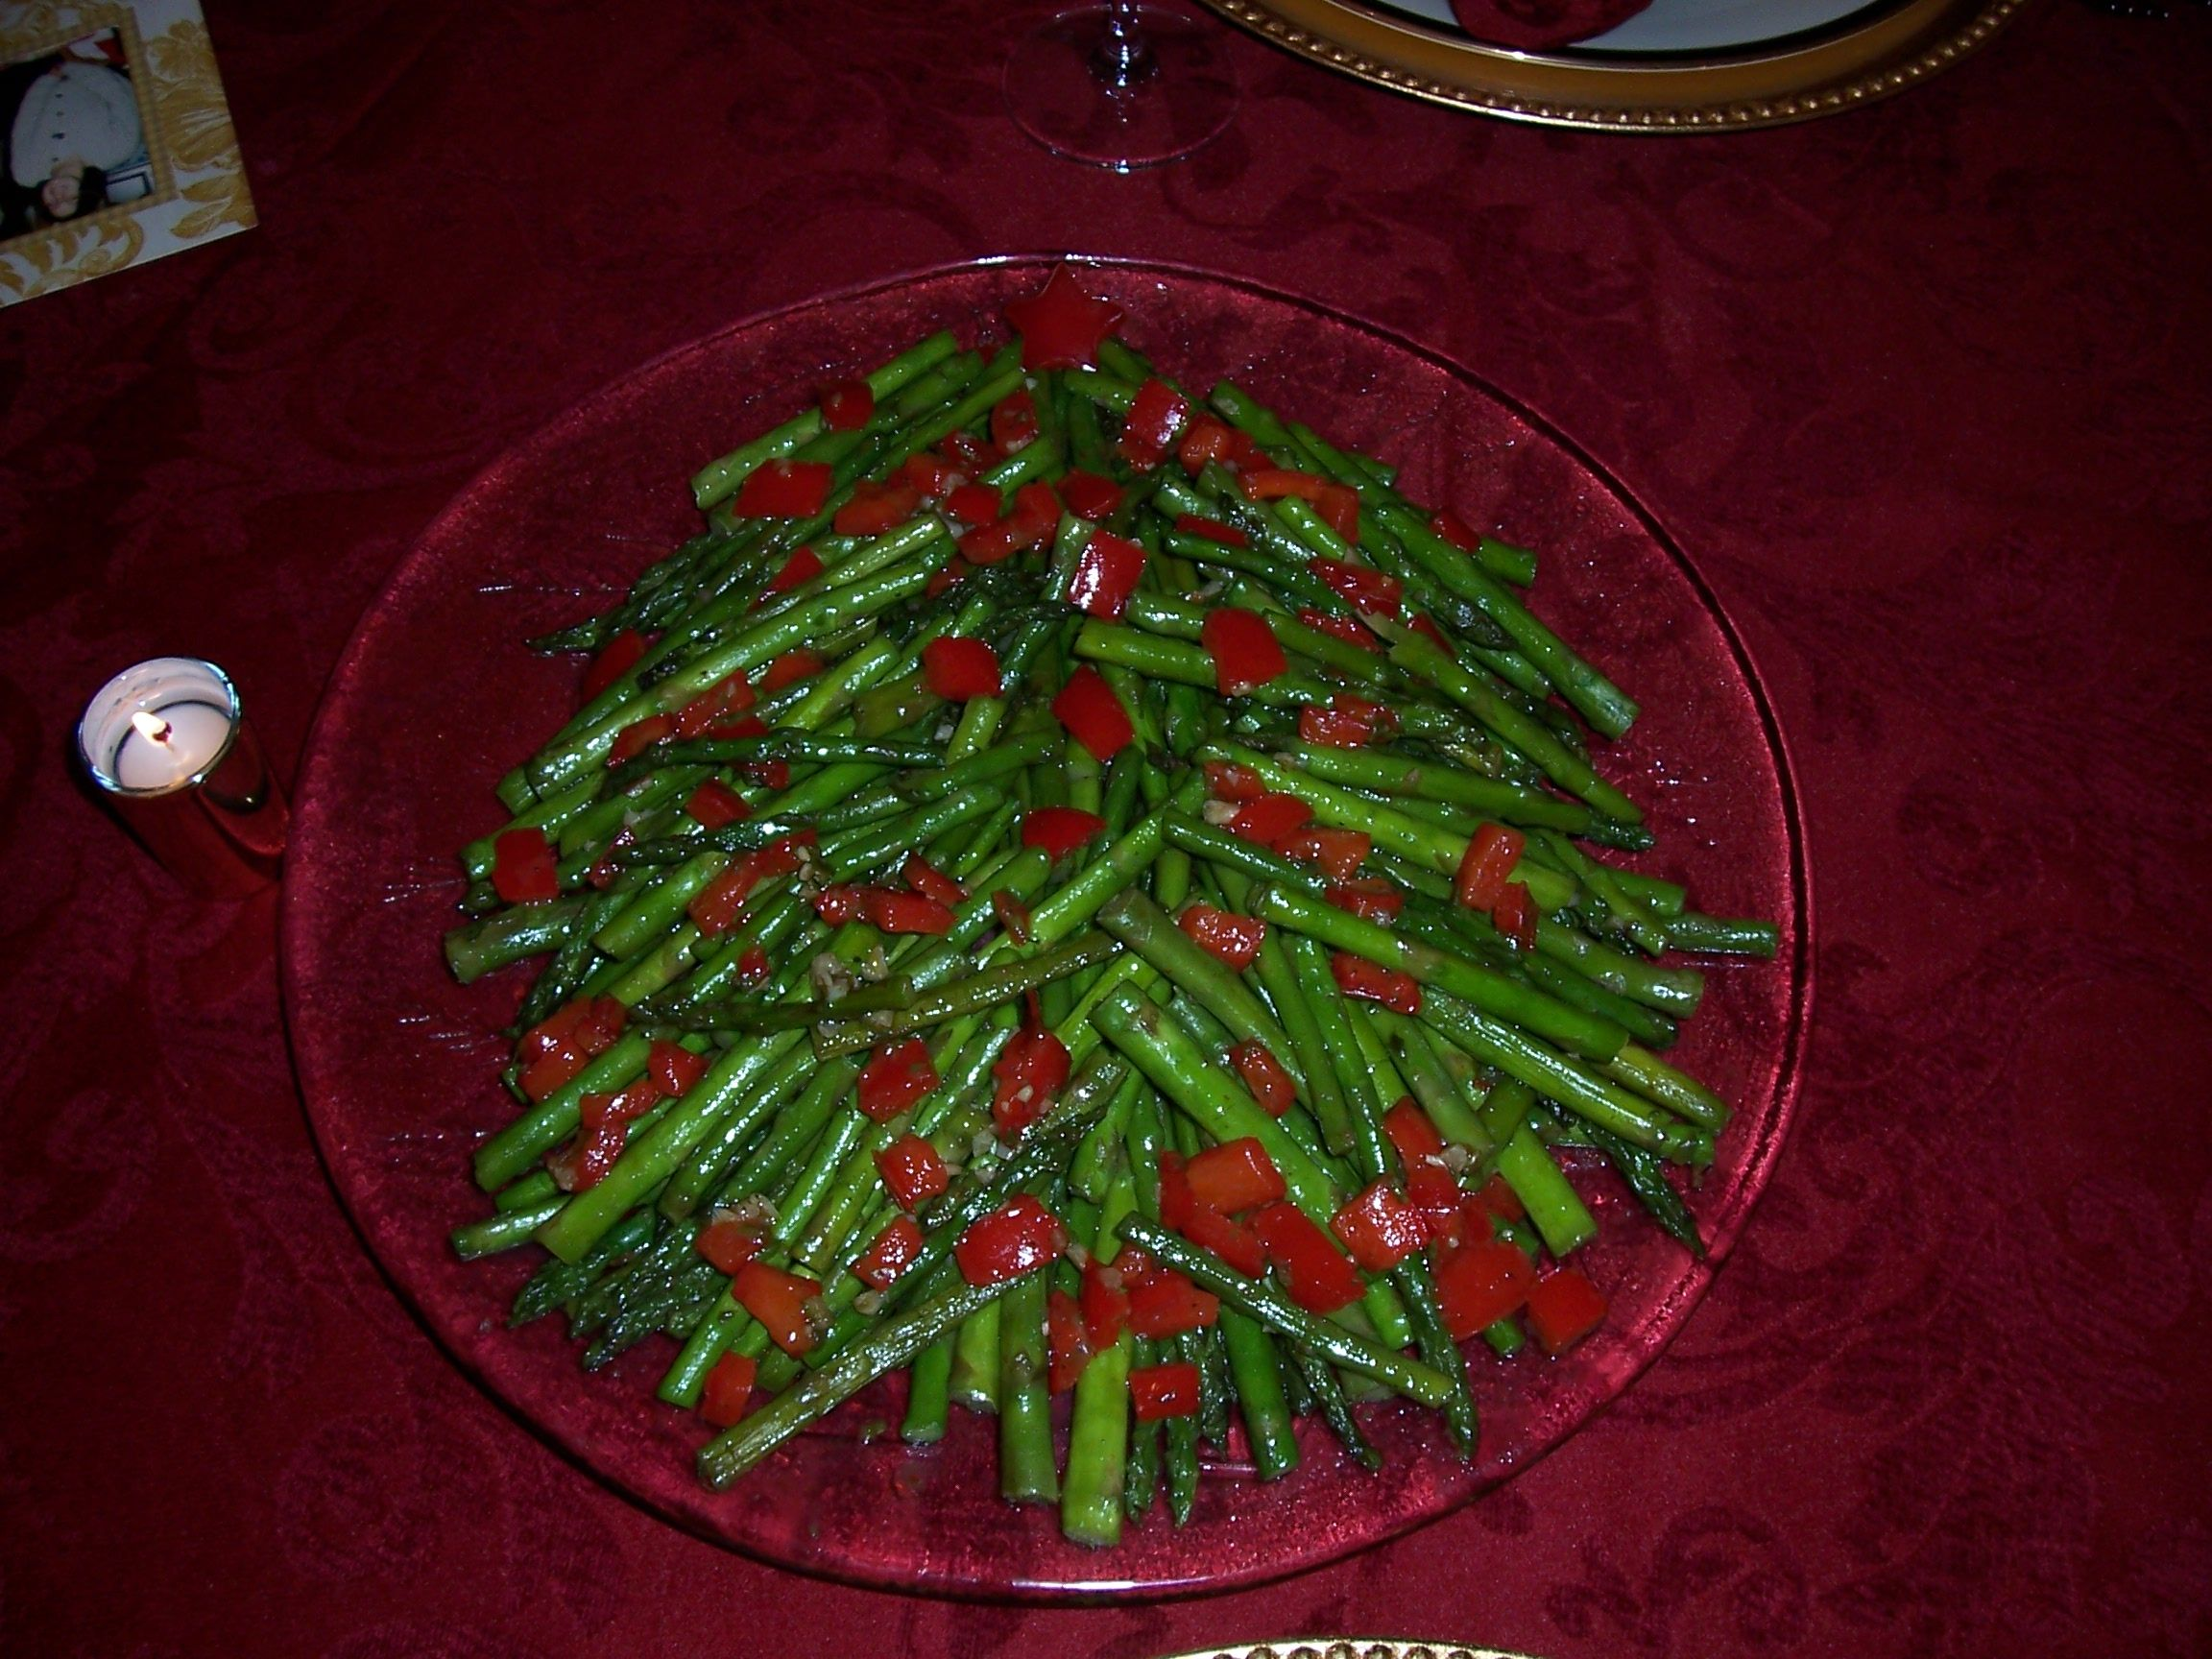 Asparagus Christmas Tree | All things Christmas! | Pinterest ...